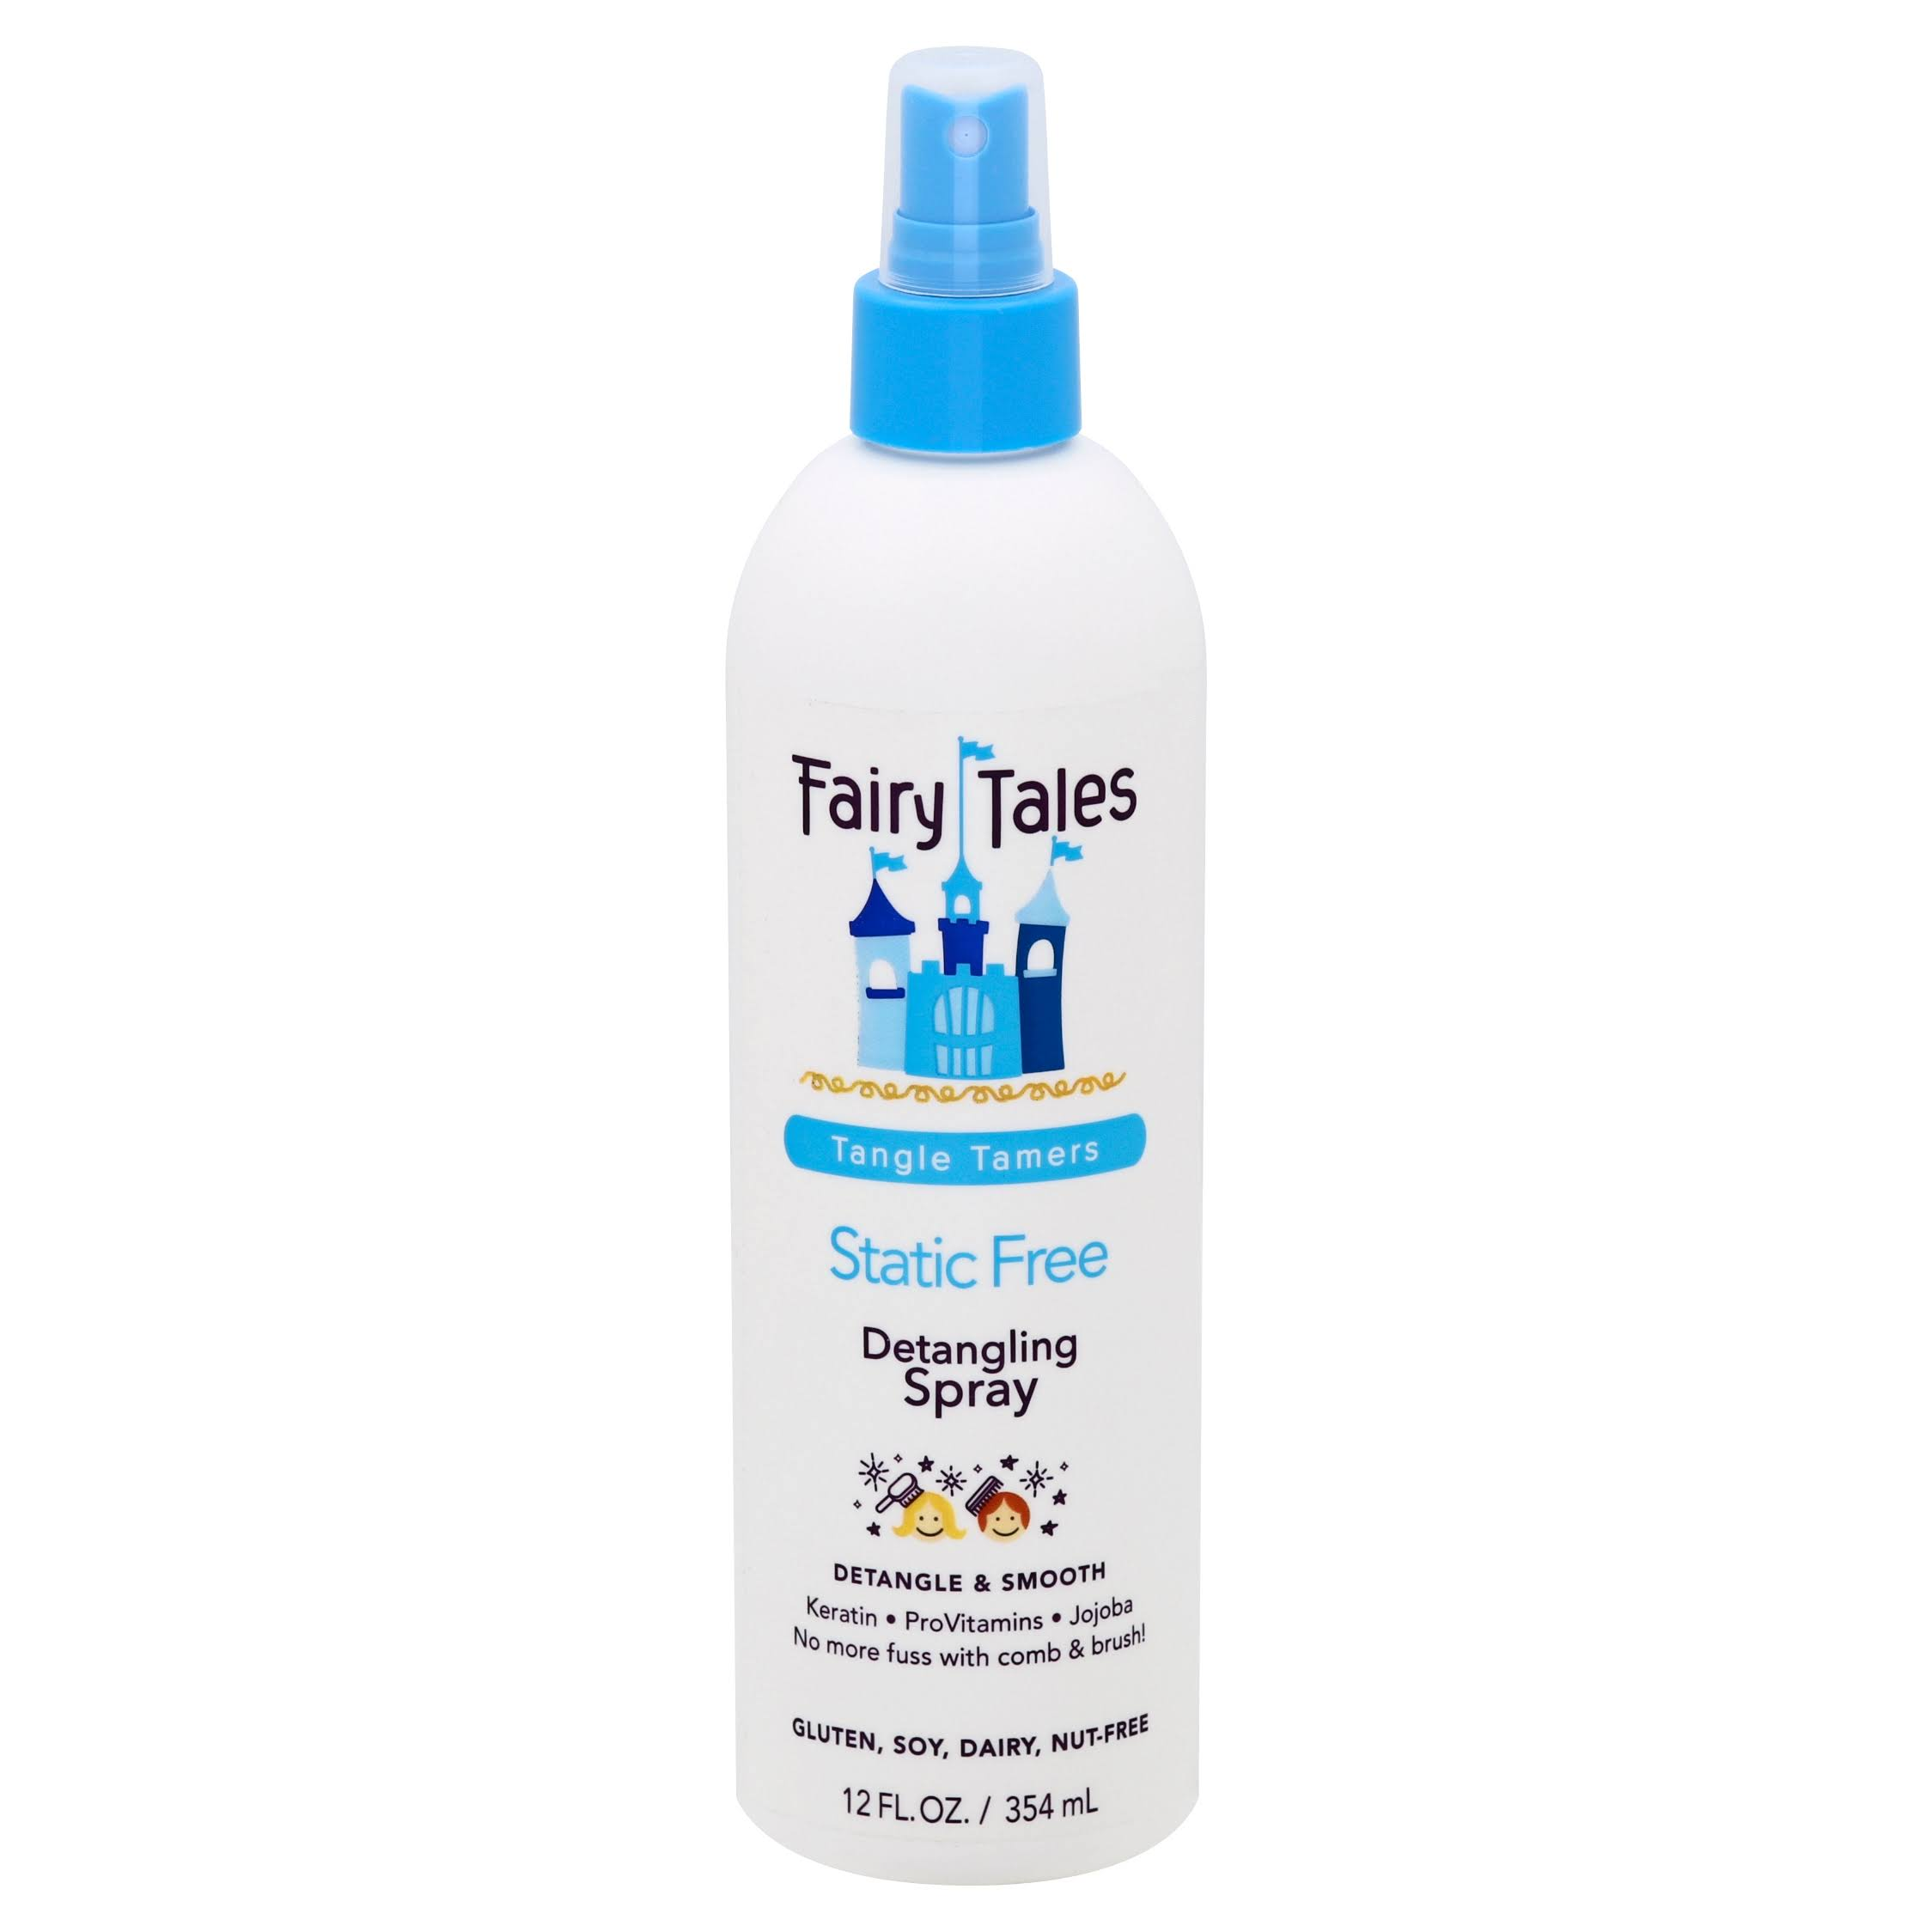 Fairy Tales Static Free Leave-In Detangling Spray - 354ml